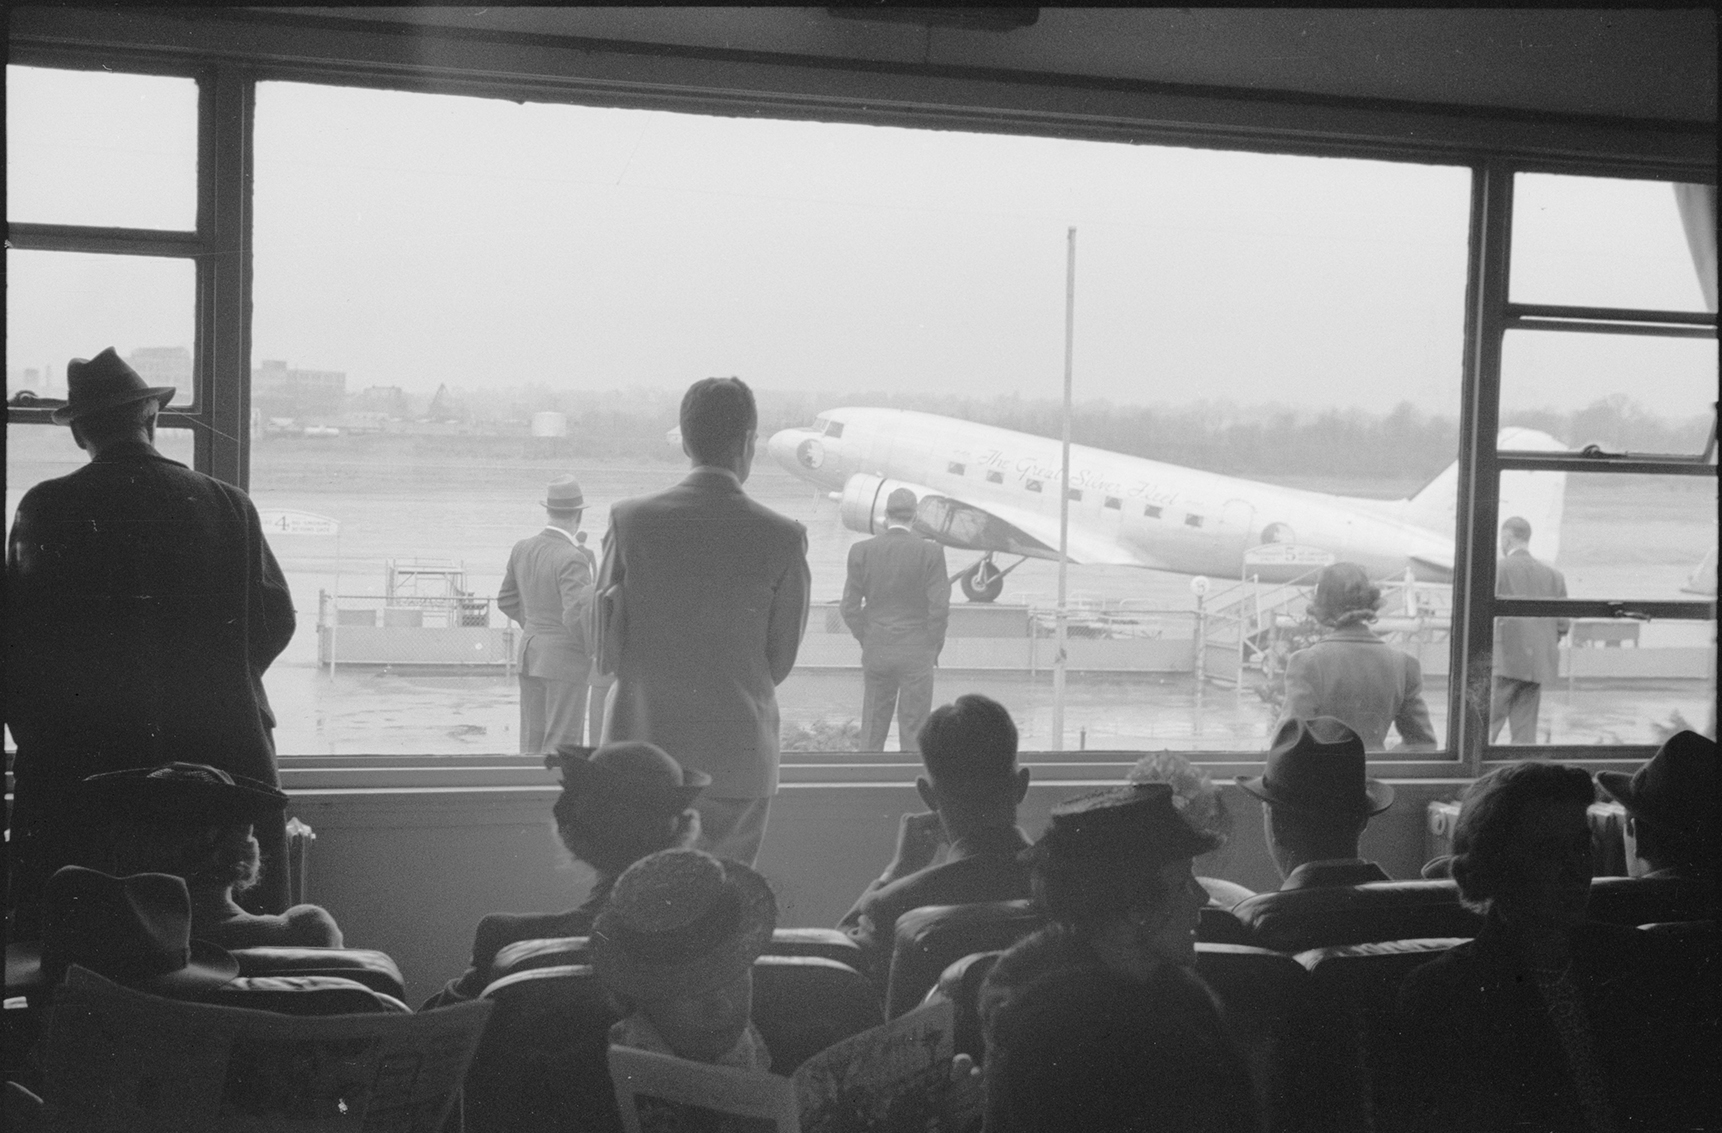 a group of travelers wait in an airport gate and watch out the windows to the runway